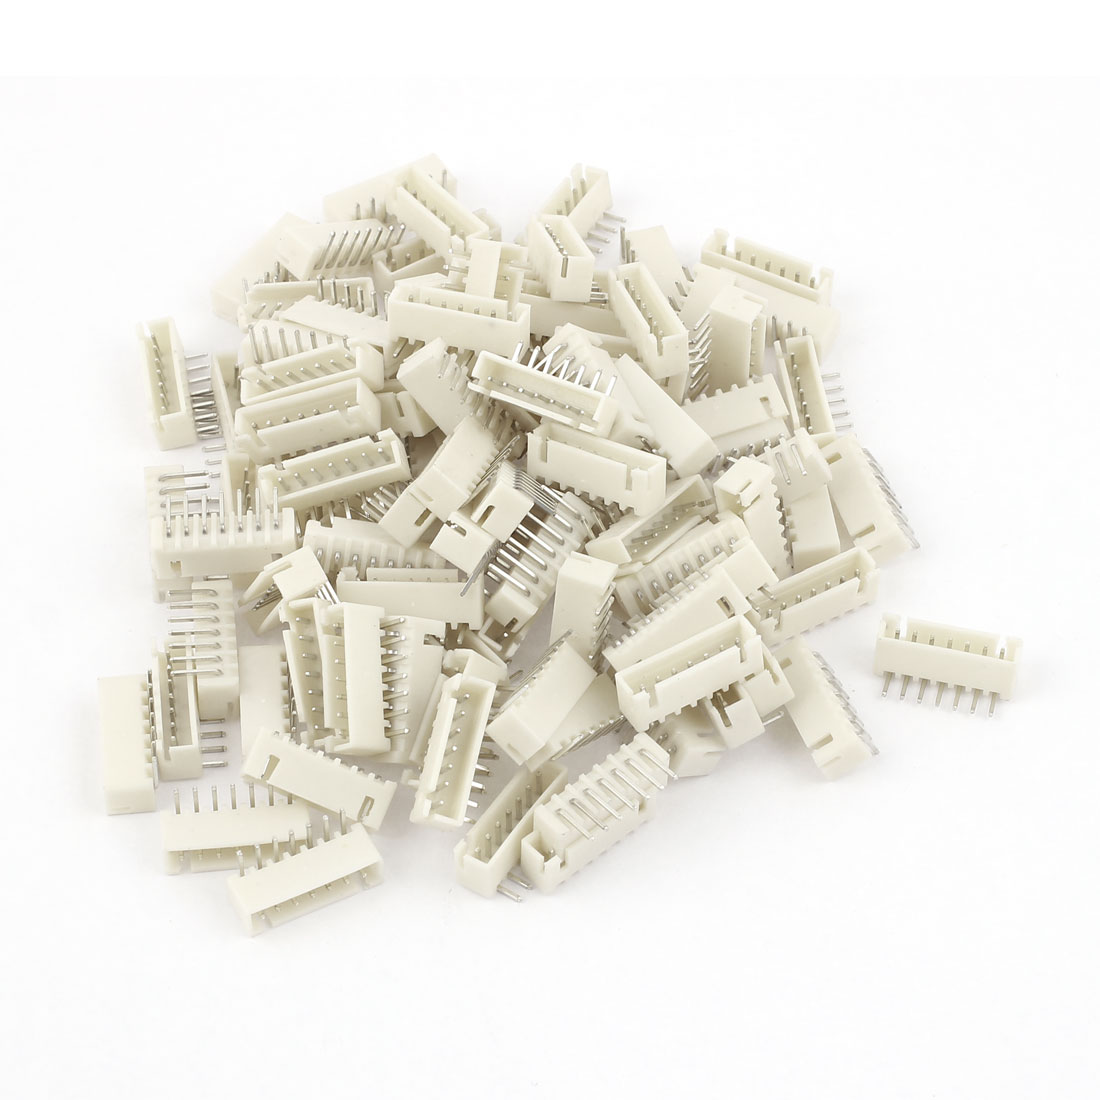 100pcs 2.54mm Pitch Right Angle 7 Pins JST Header Socket Male Connector